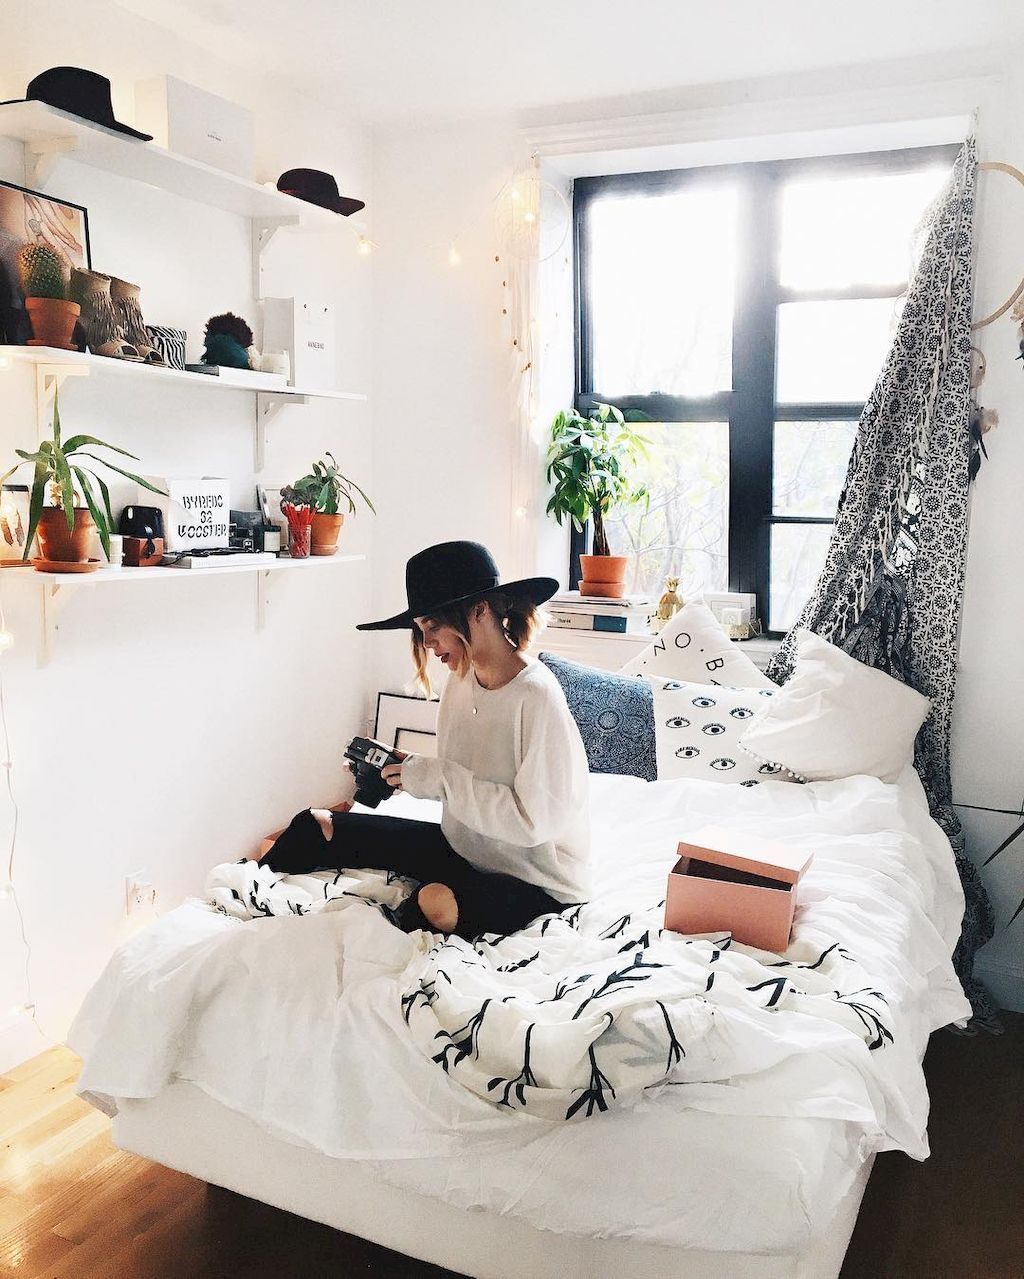 Awesome 40 Beautiful Minimalist Dorm Room Decor Ideas On A Budget  Https://homeastern.com/2017/07/14/40 Beautiful Minimalist Dorm  Room Decor Ideas Budget/